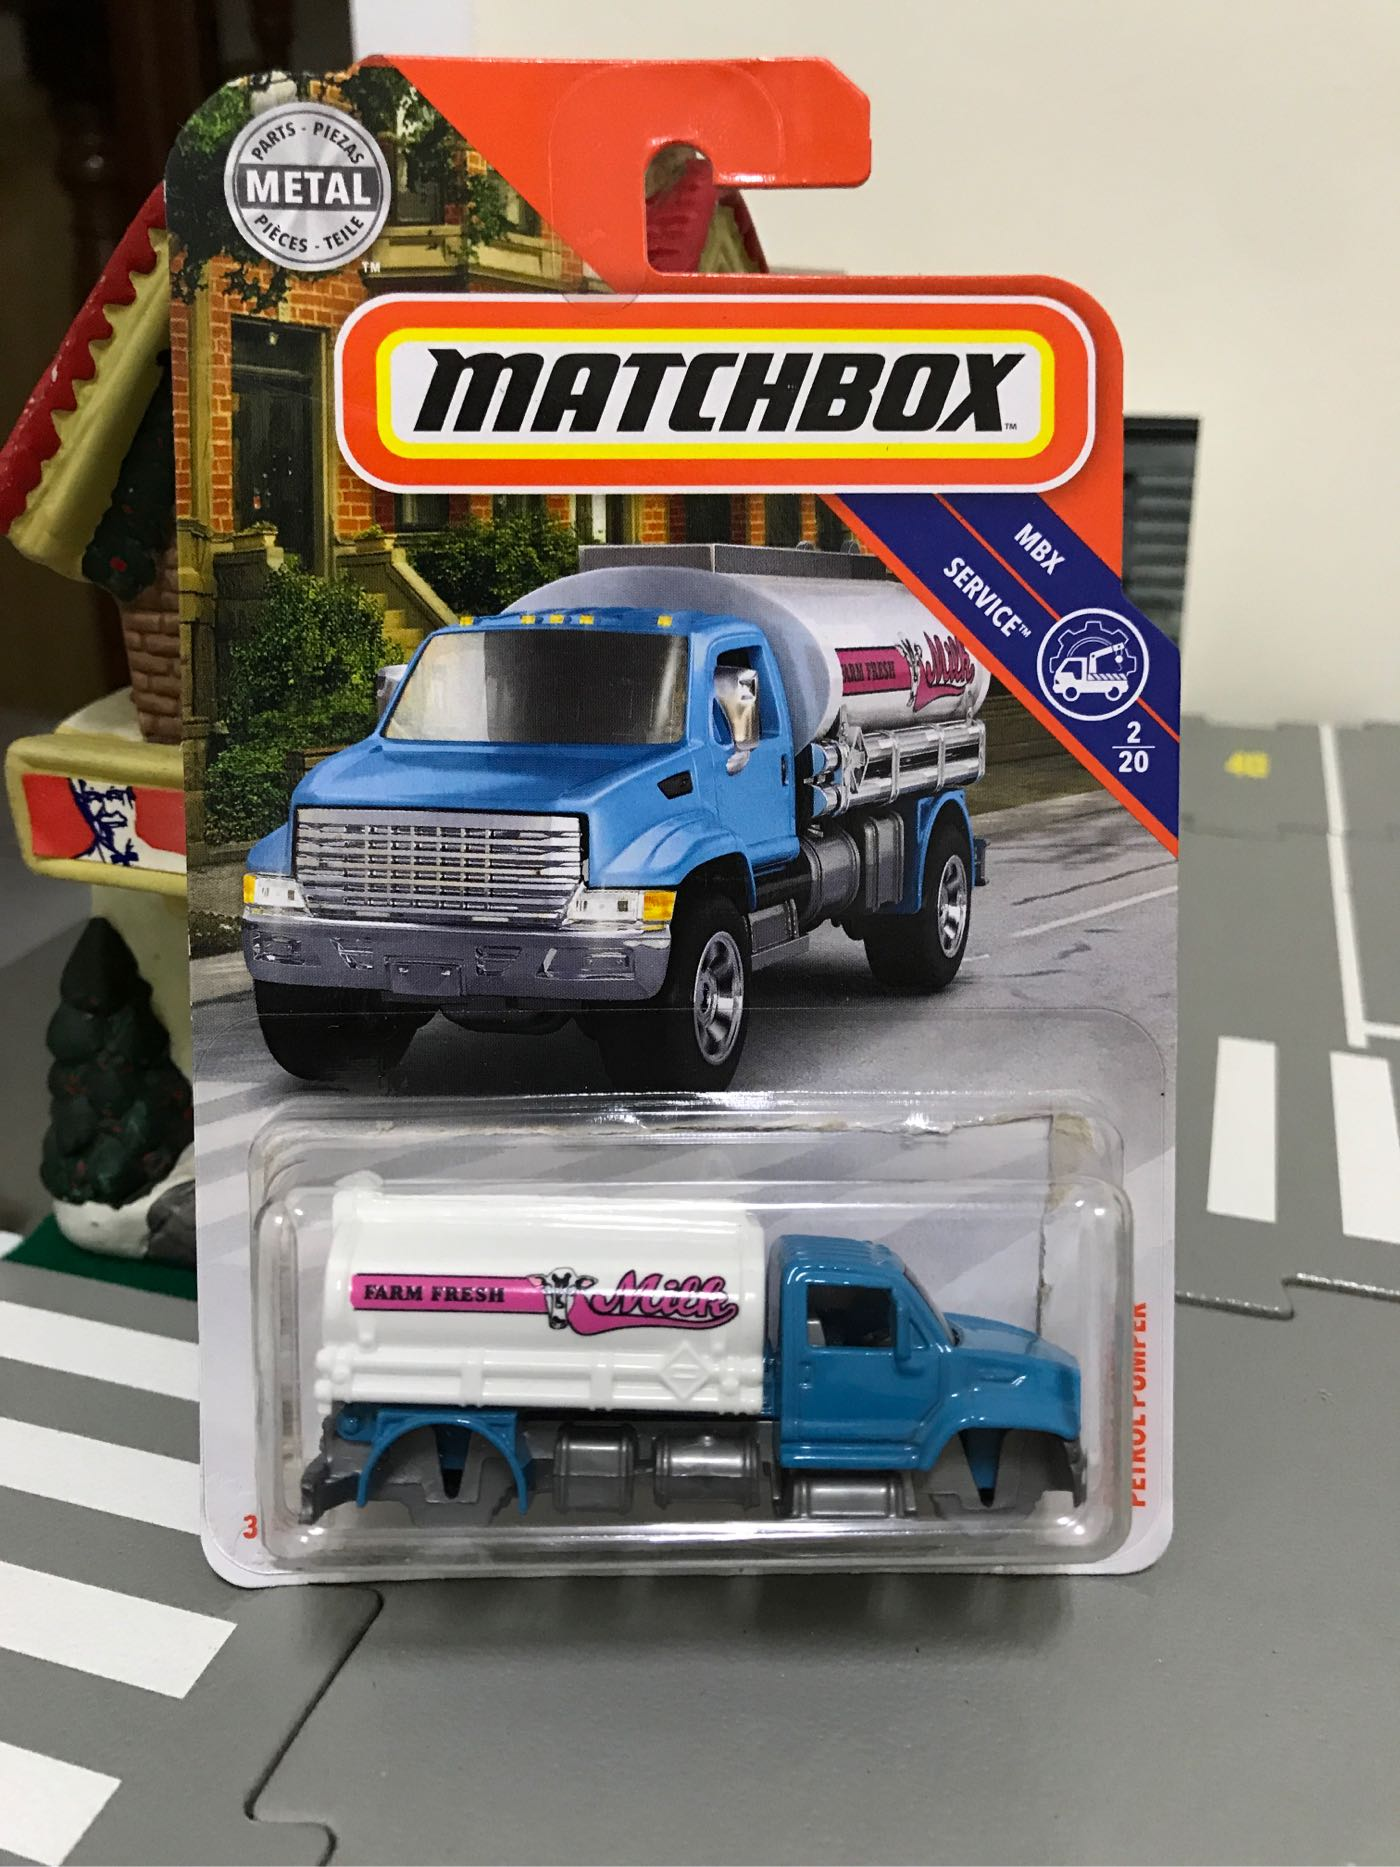 MATCHBOX PETROL PUMPER 零件車